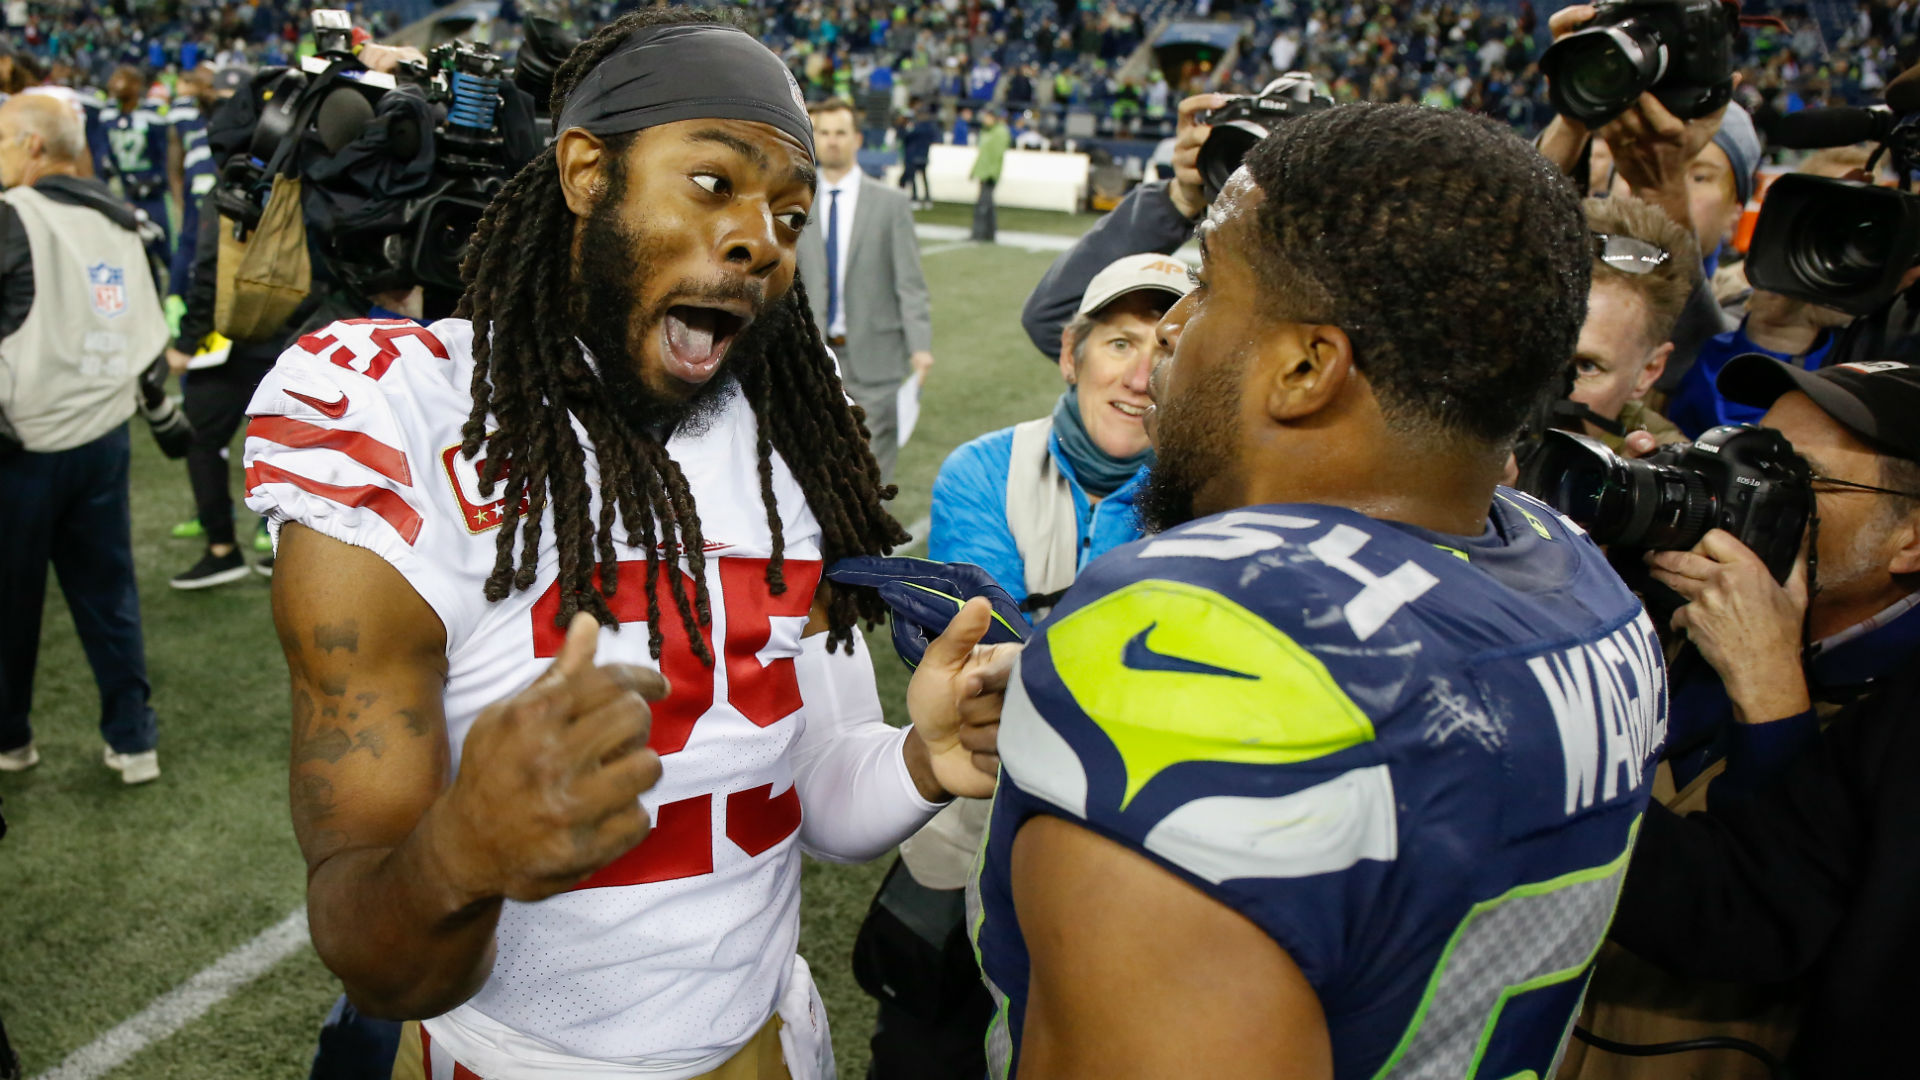 Richard Sherman unfazed by Seahawks' comments: 'Kids say the darndest things'